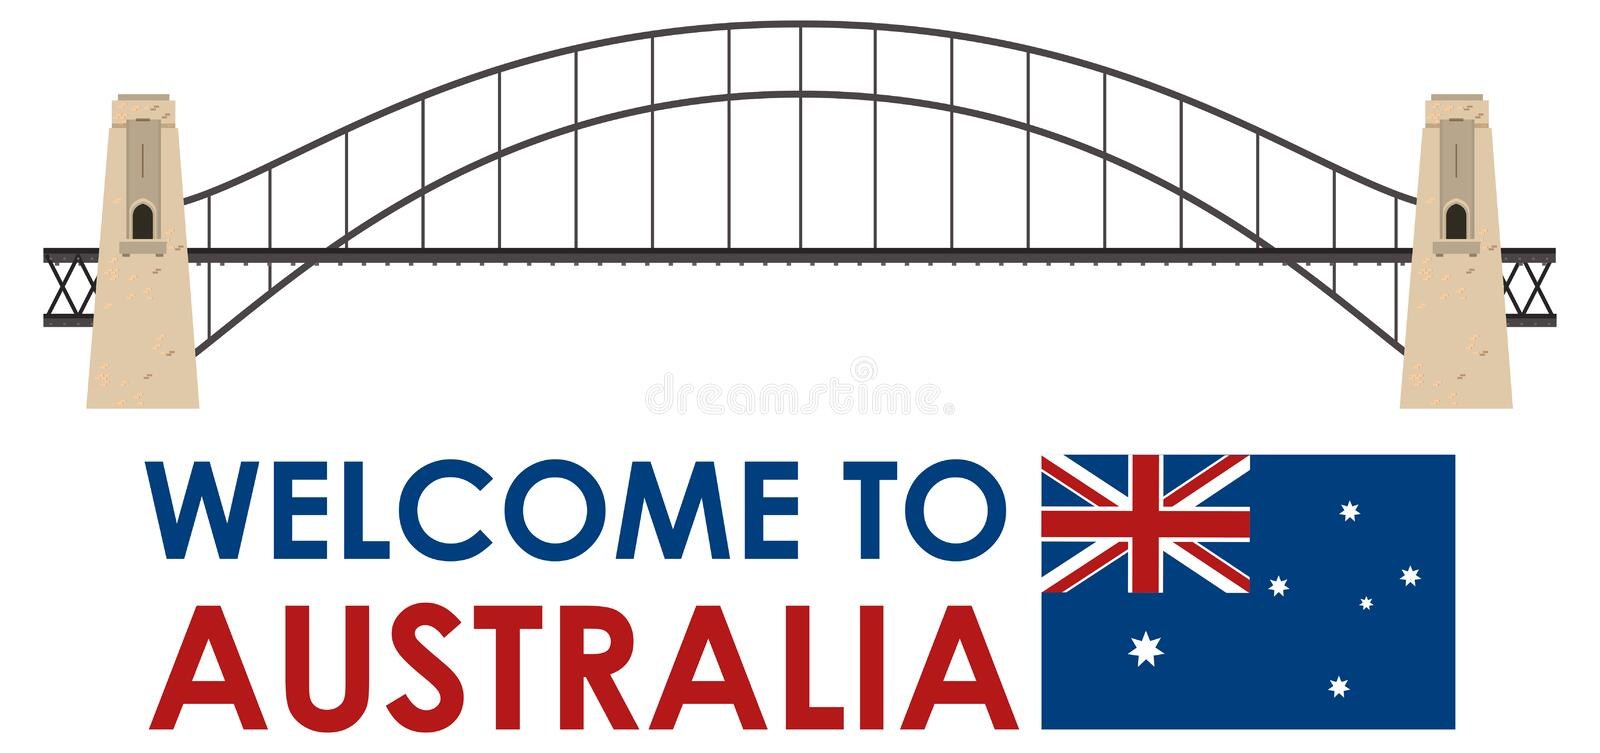 Pont de port d'Australie sur le fond blanc illustration stock